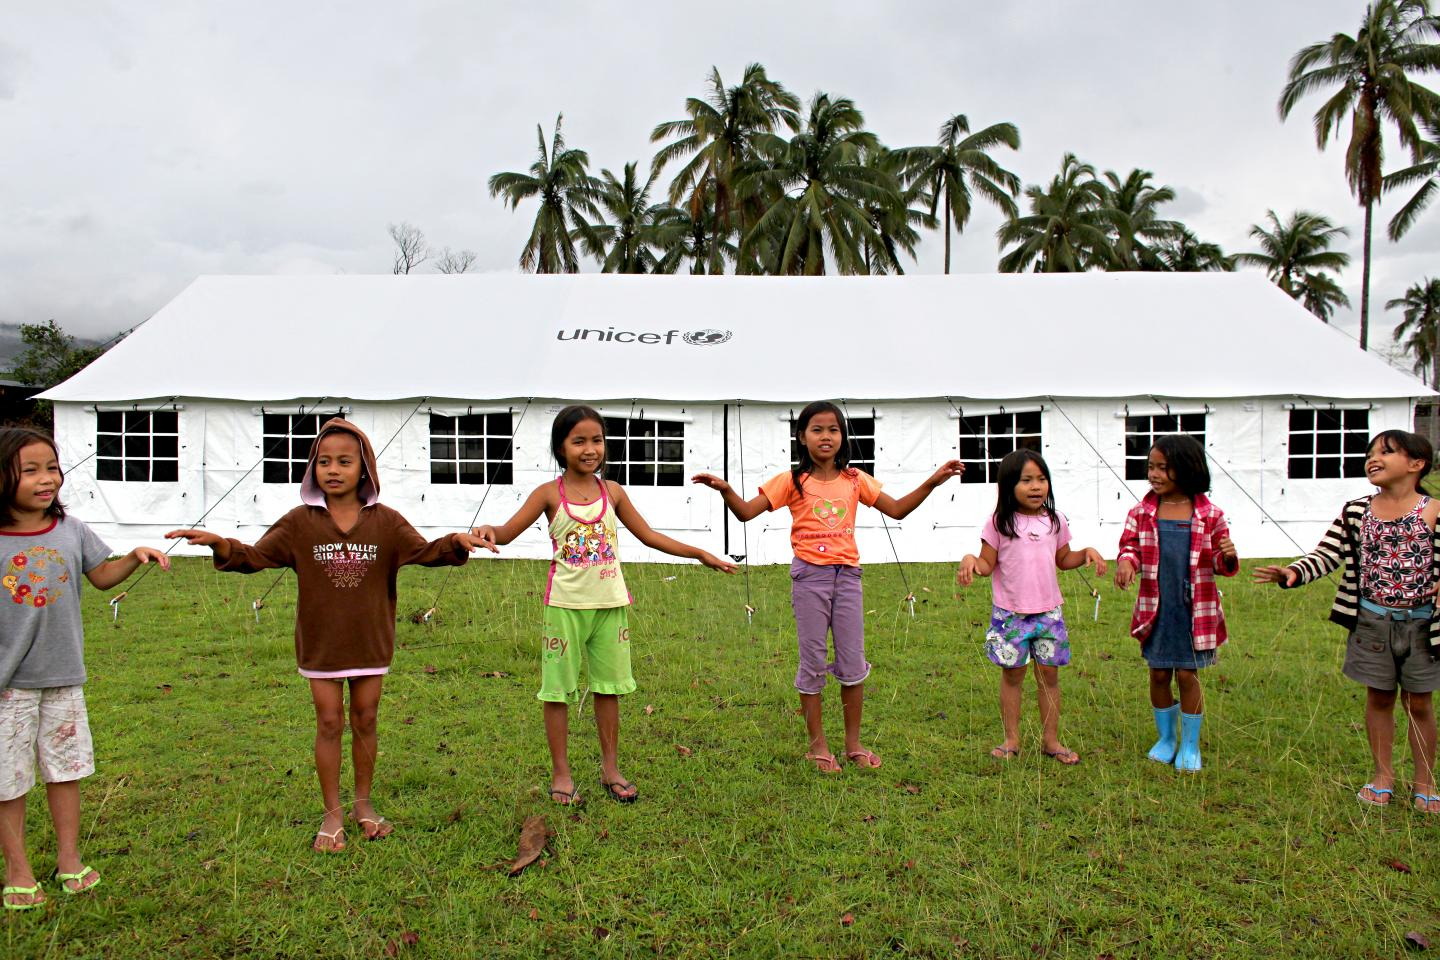 Children playing in front of a UNICEF tent